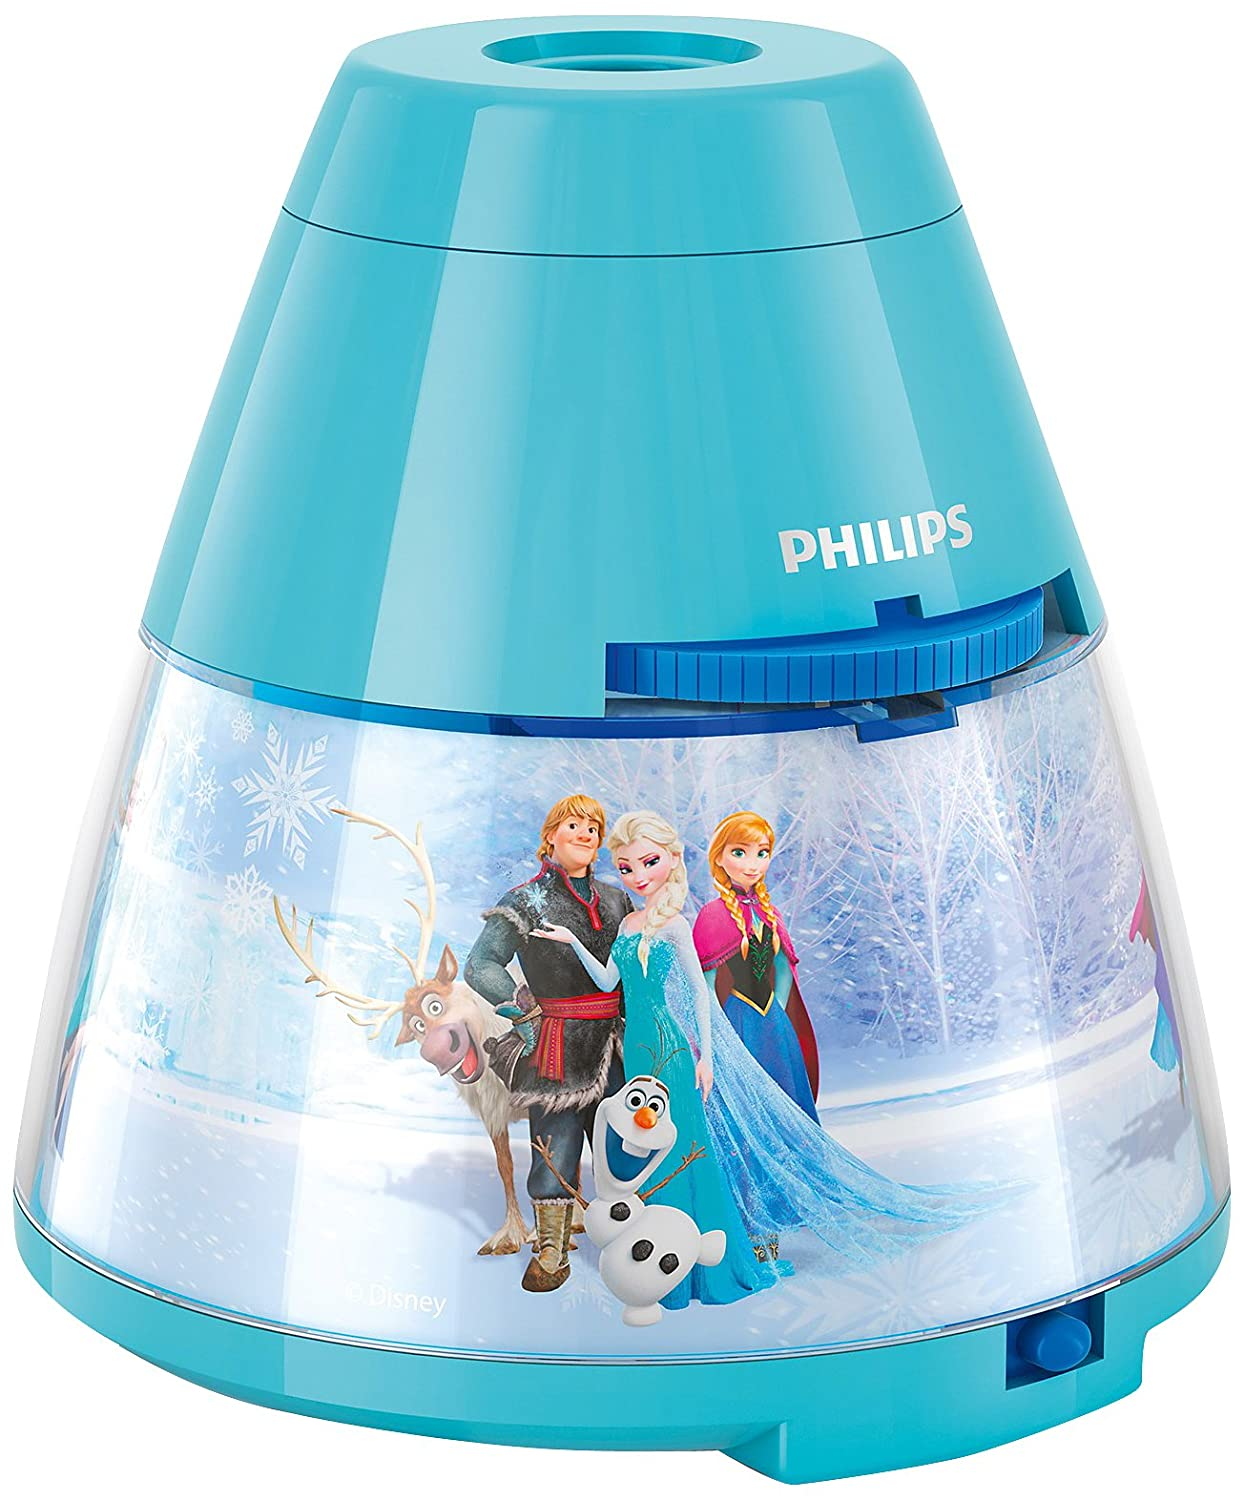 Childrens Night Light Table Lamps Disney Frozen Bedside Table Lamp Children Night Light